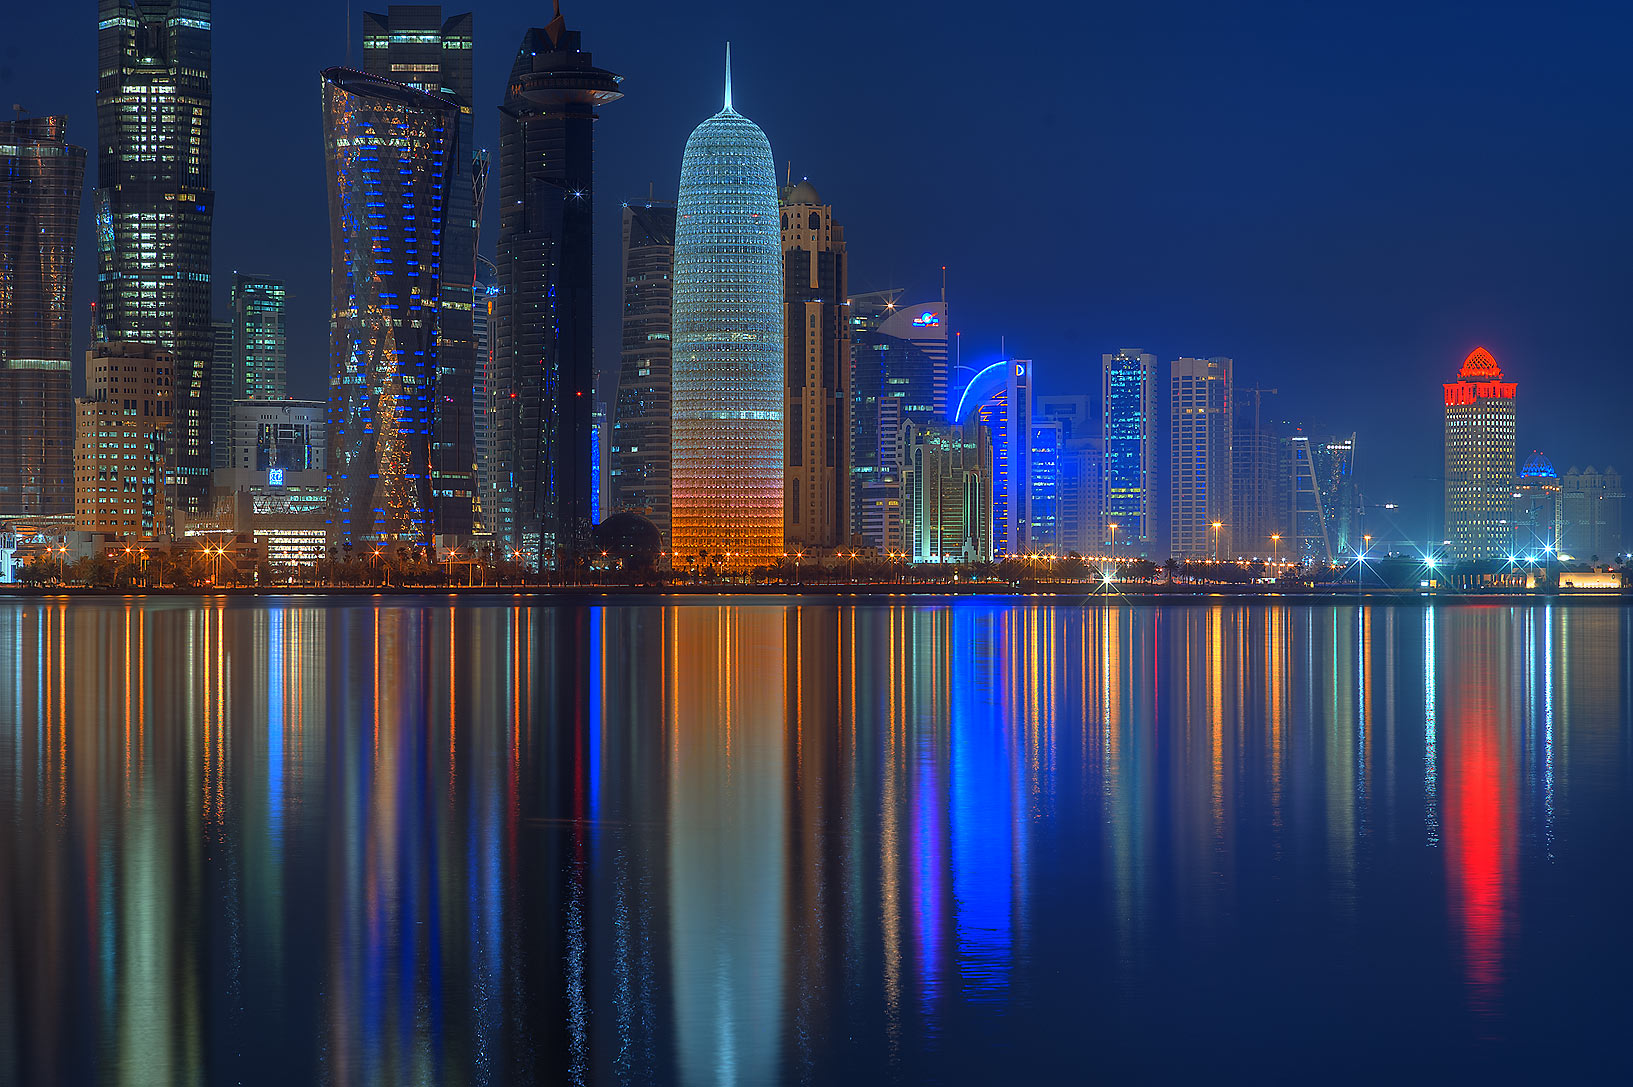 Reflection of lights of West Bay from Corniche promenade. Doha, Qatar